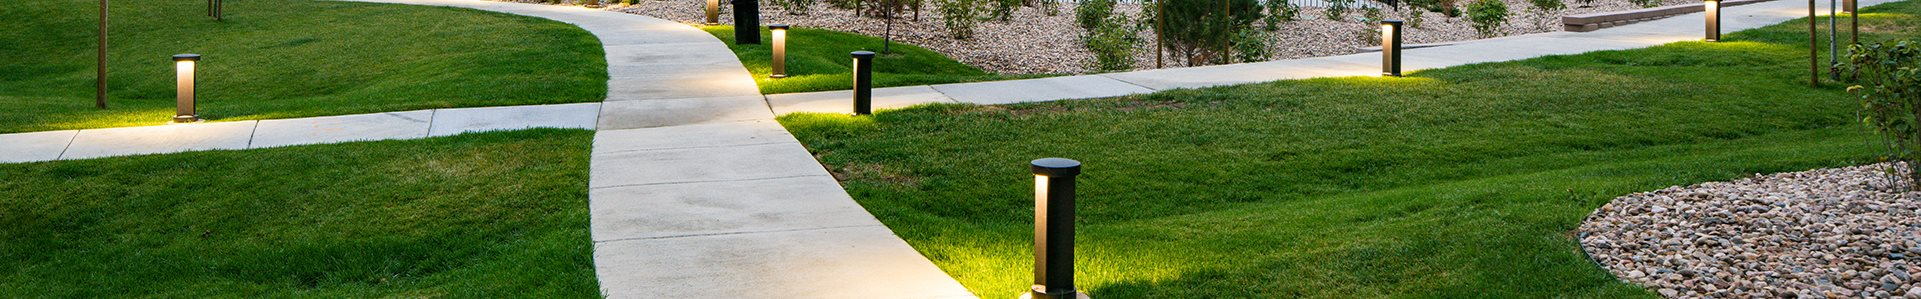 Lite Pathway with grass to apt buildings Units Available in Colorado Springs, CO | Copper Range Apartment Homes